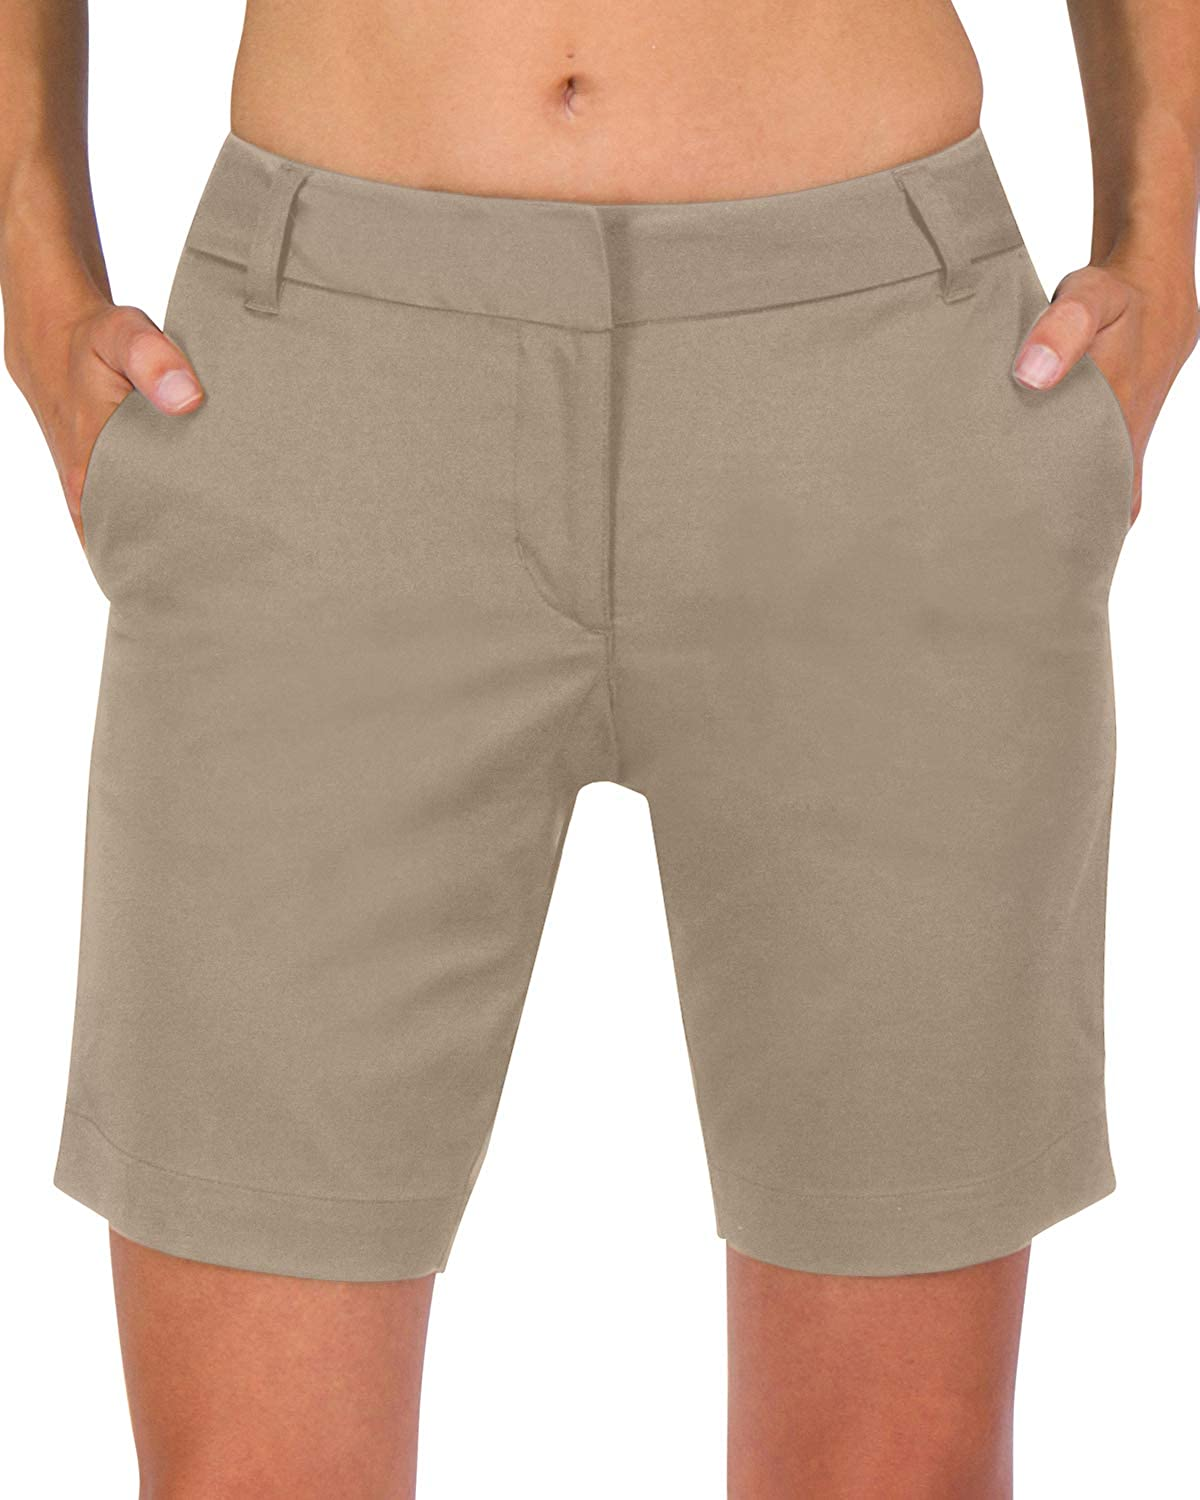 Three Sixty Six Womens Bermuda Golf - Shipping New product! New type included Quick Sh Dry Shorts Active